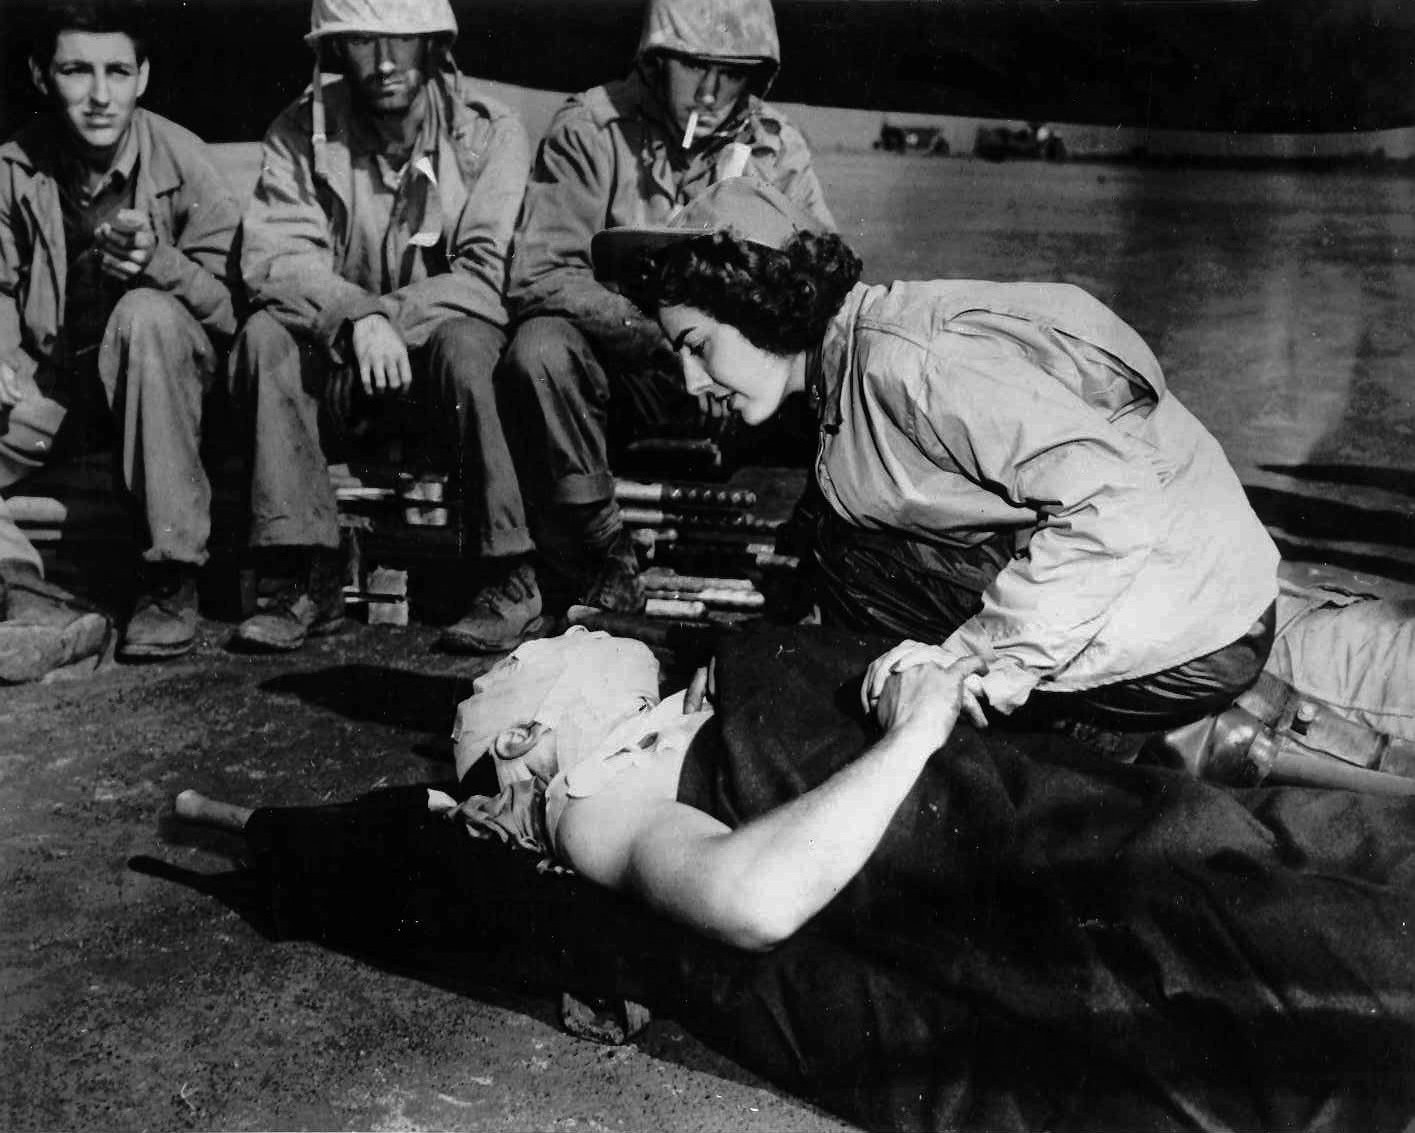 contribution of nurses in war Watch video thousands of women in the north and south joined volunteer brigades and signed up to work as nurses it was the first time in american history that women played a significant role in a war effort.